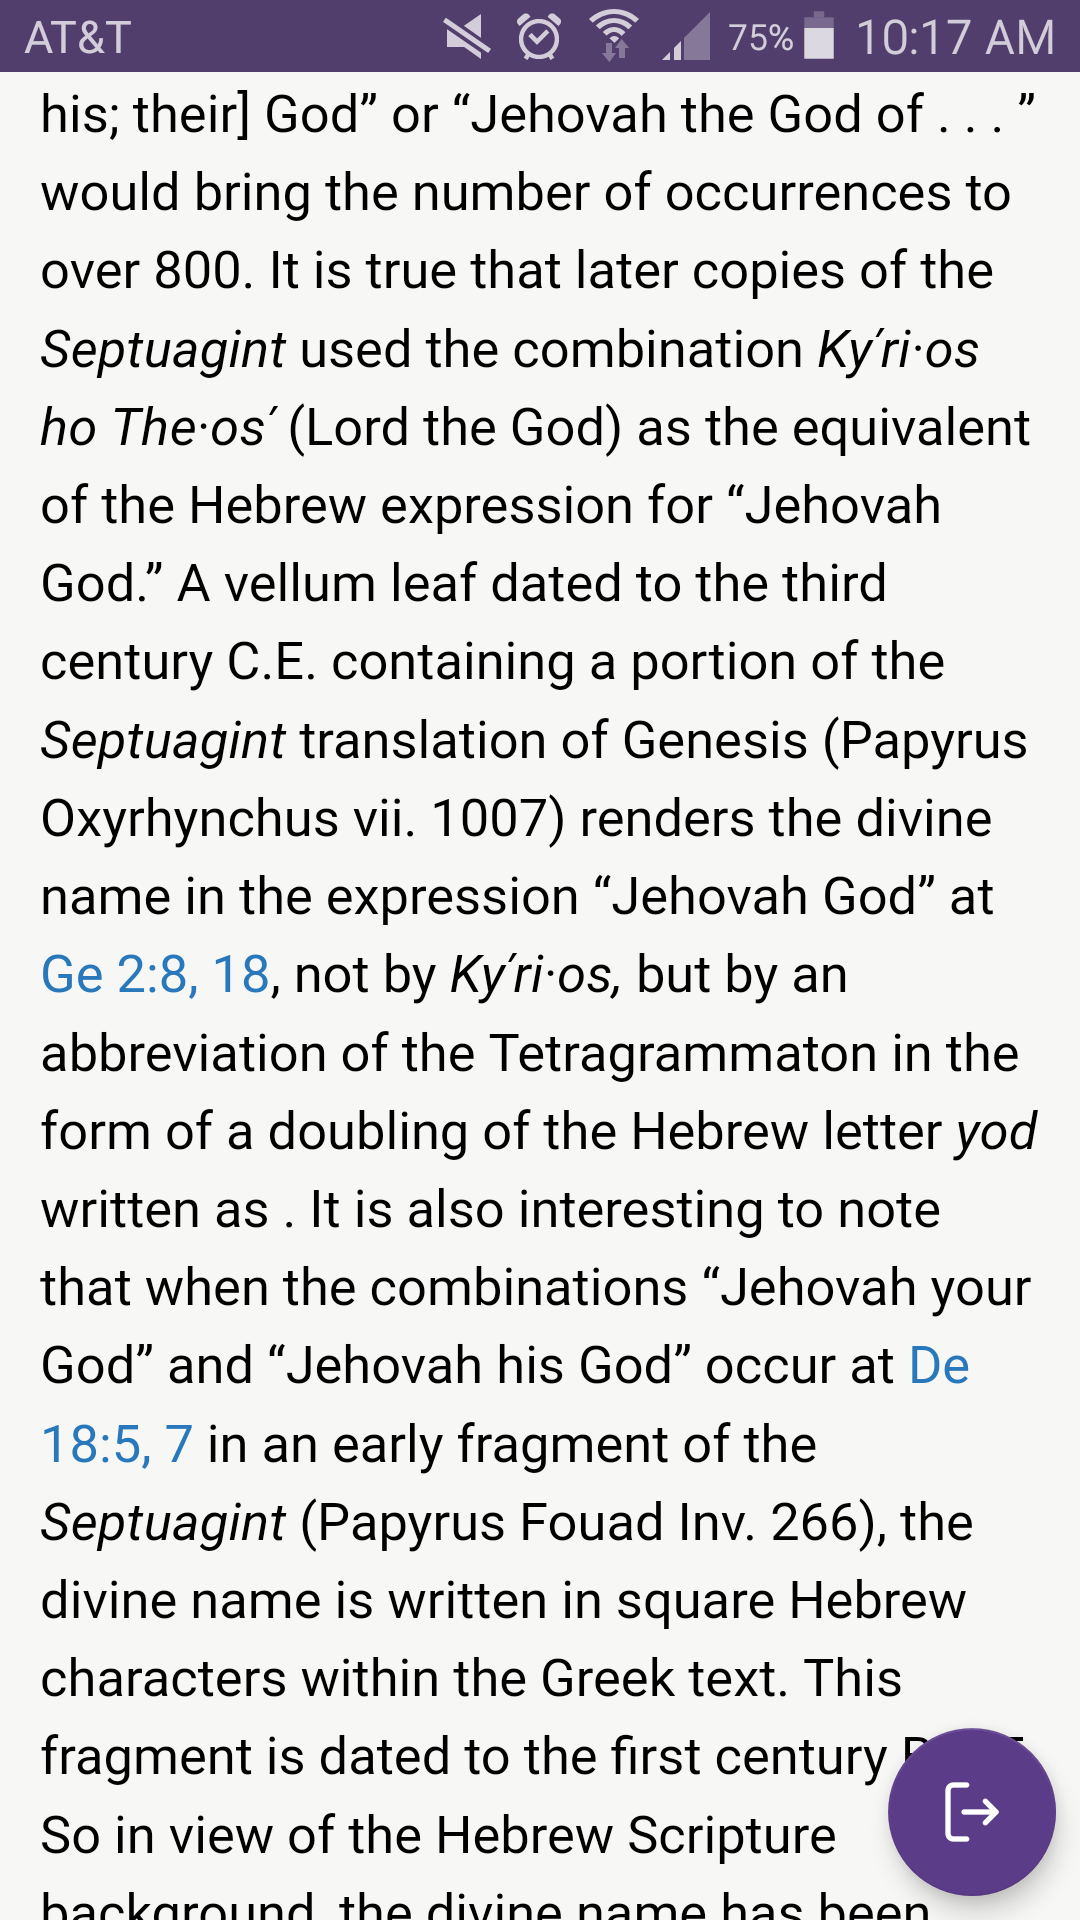 Updates to JW Library (iOS, Android, Windows) - Page 120